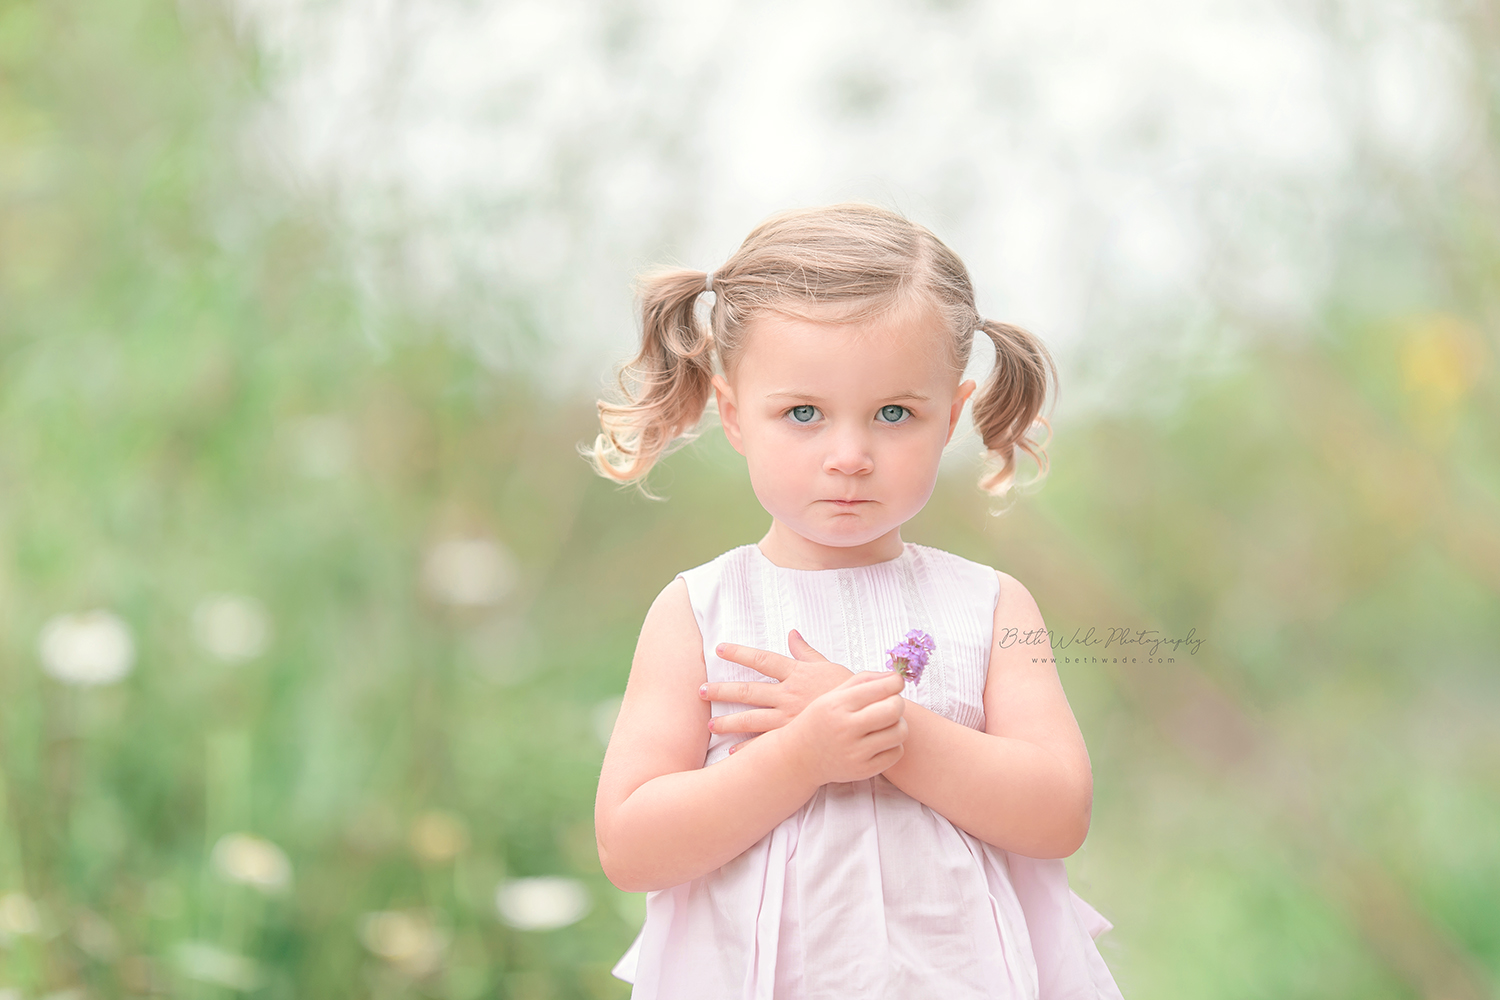 sweet alice jane ~ our girl is 2.5 years old {lake wylie baby photographer}